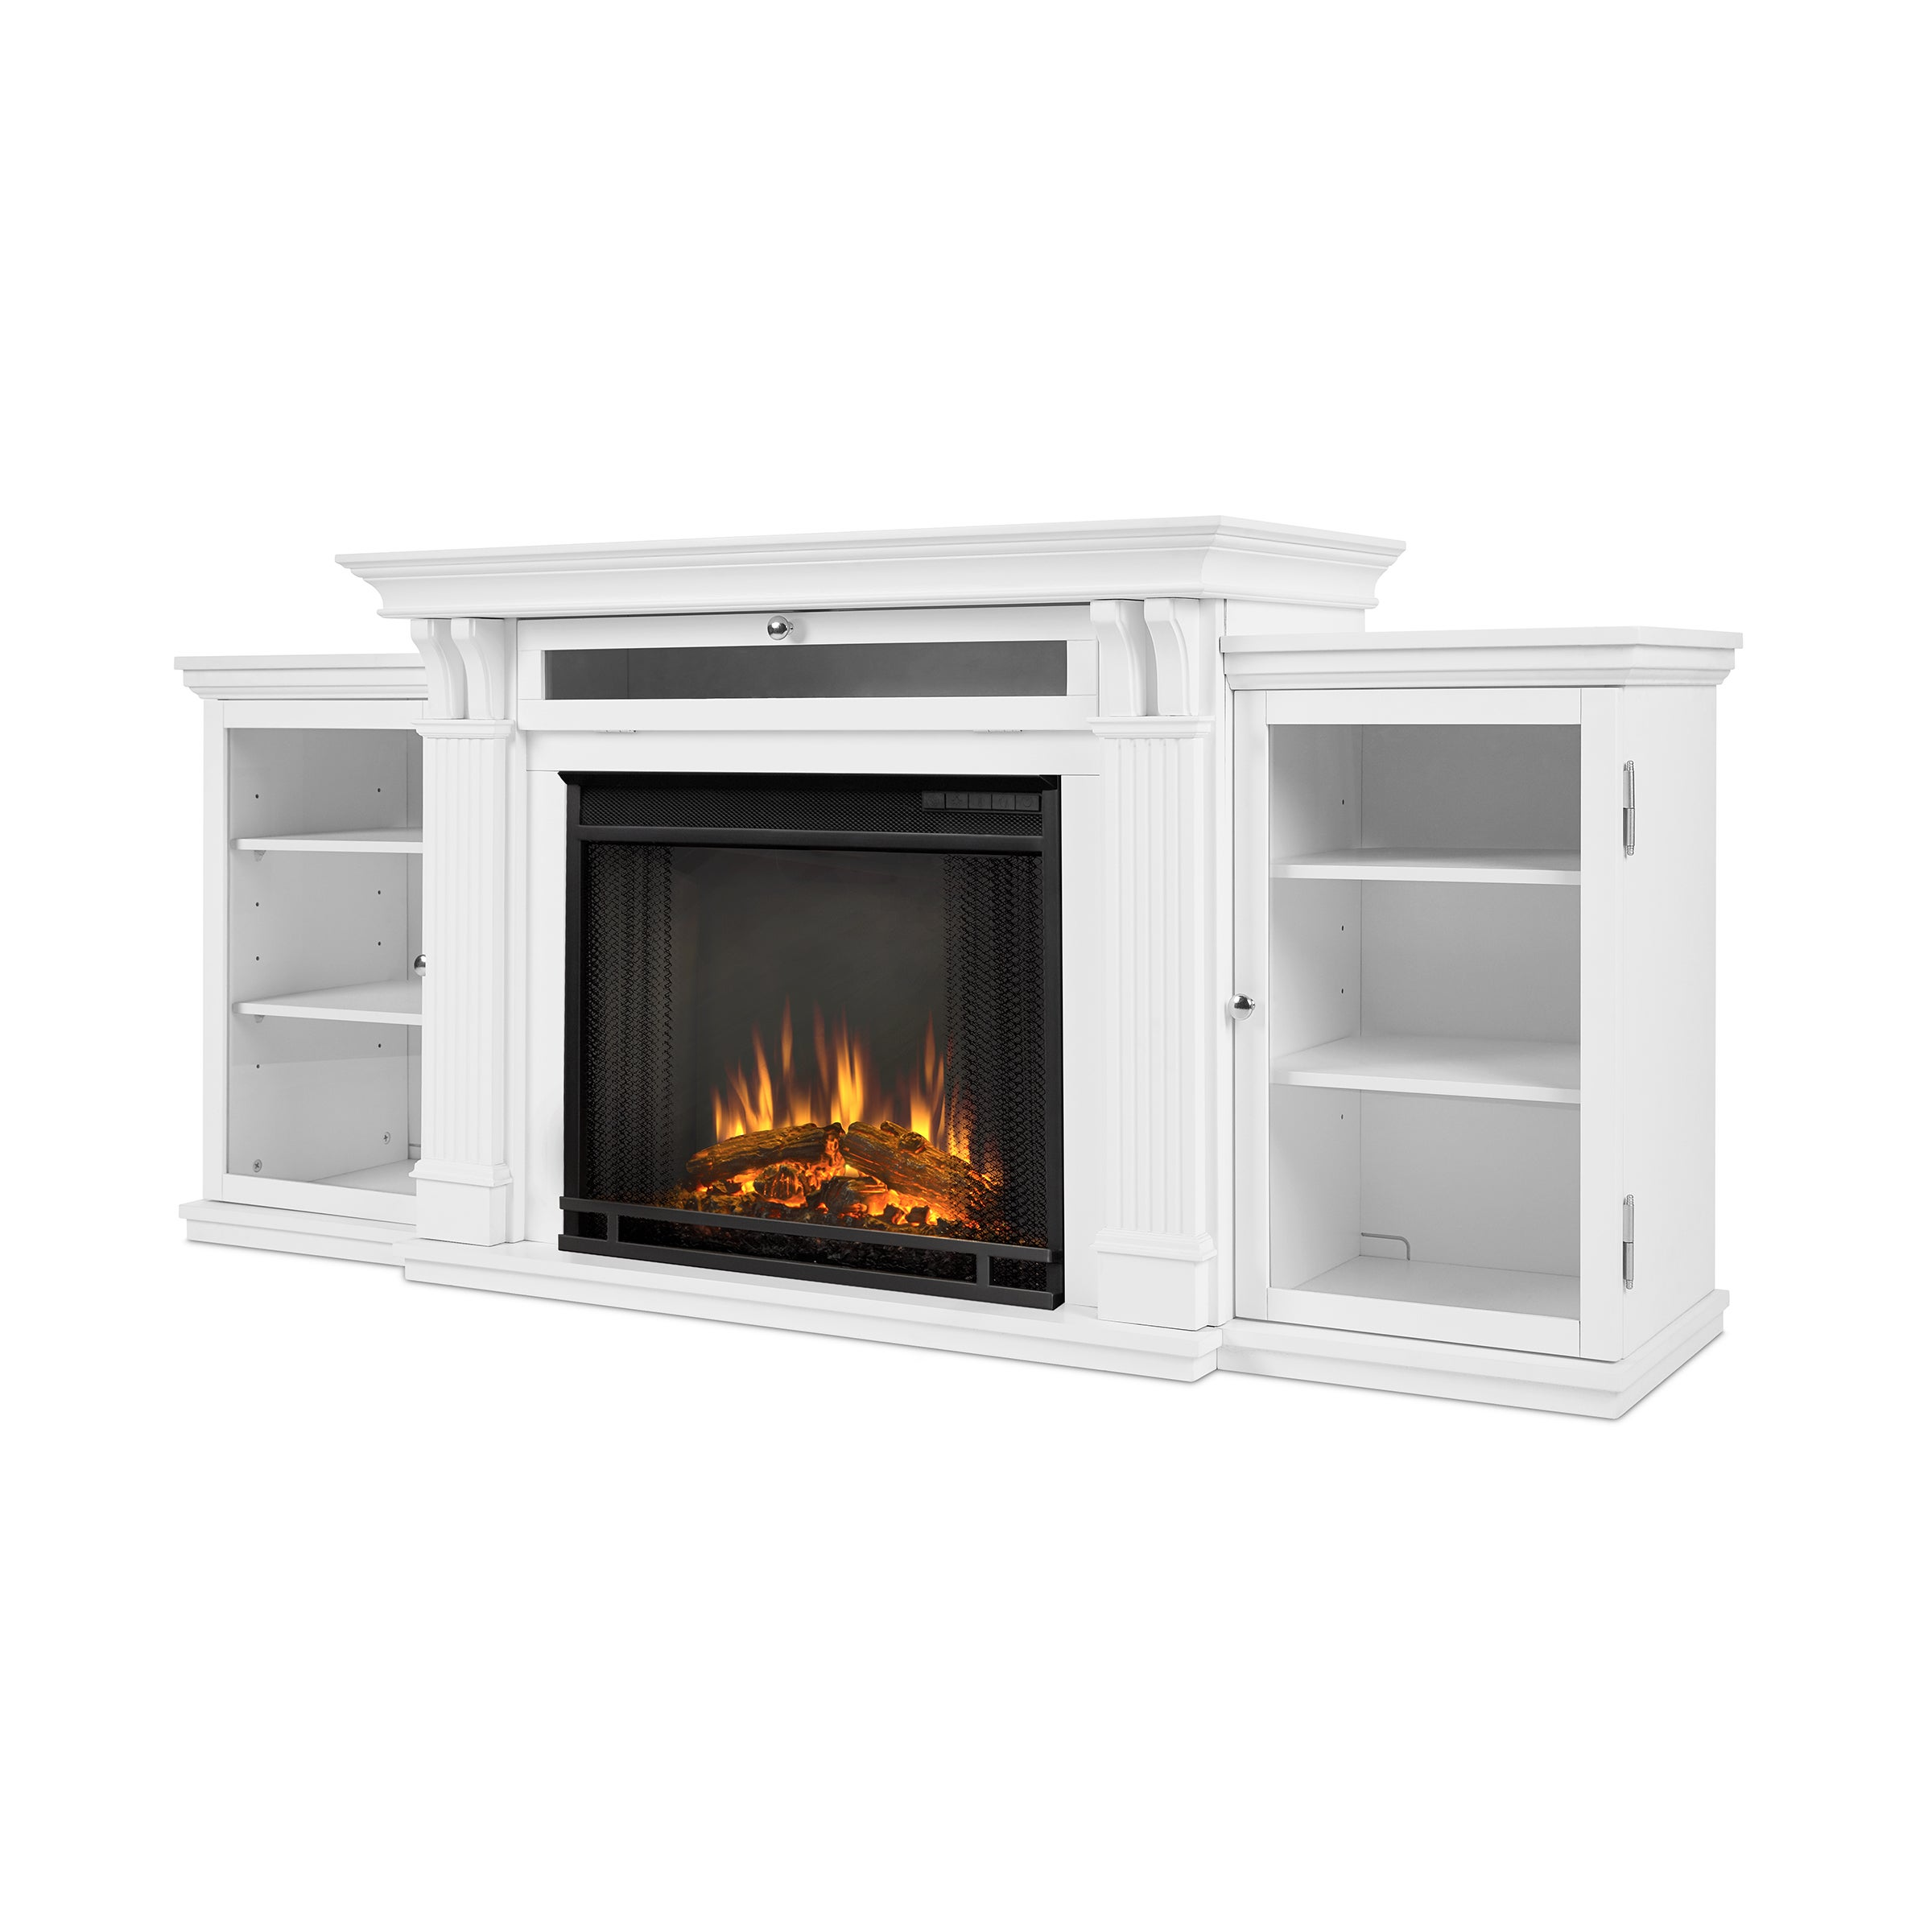 ins of entertainment built with best center units centers white design tsumi fireplace console mount elegant gecalsa tv electric interior fireplaces in decoration